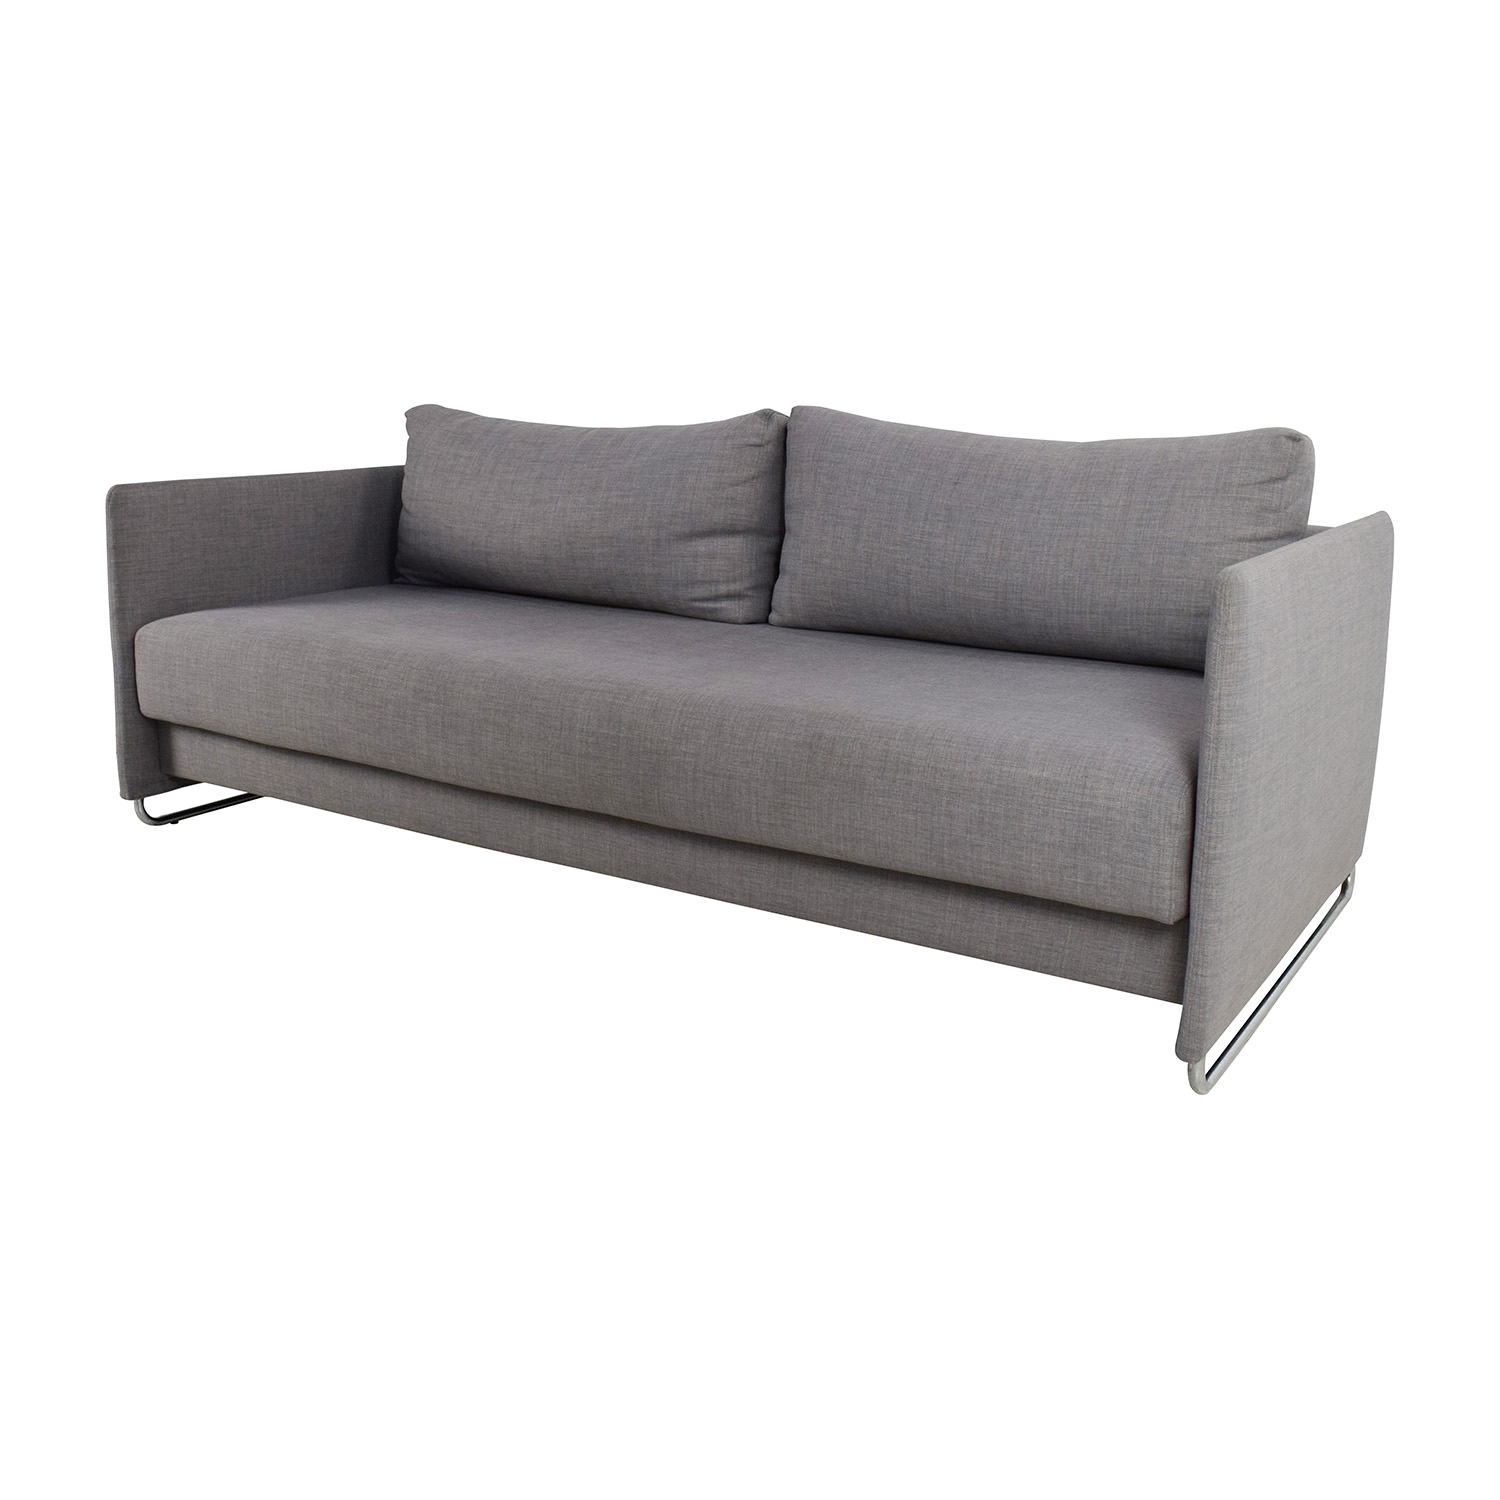 cb2 sectional sofa bed black fabric corner forte channeled saddle leather thesofa